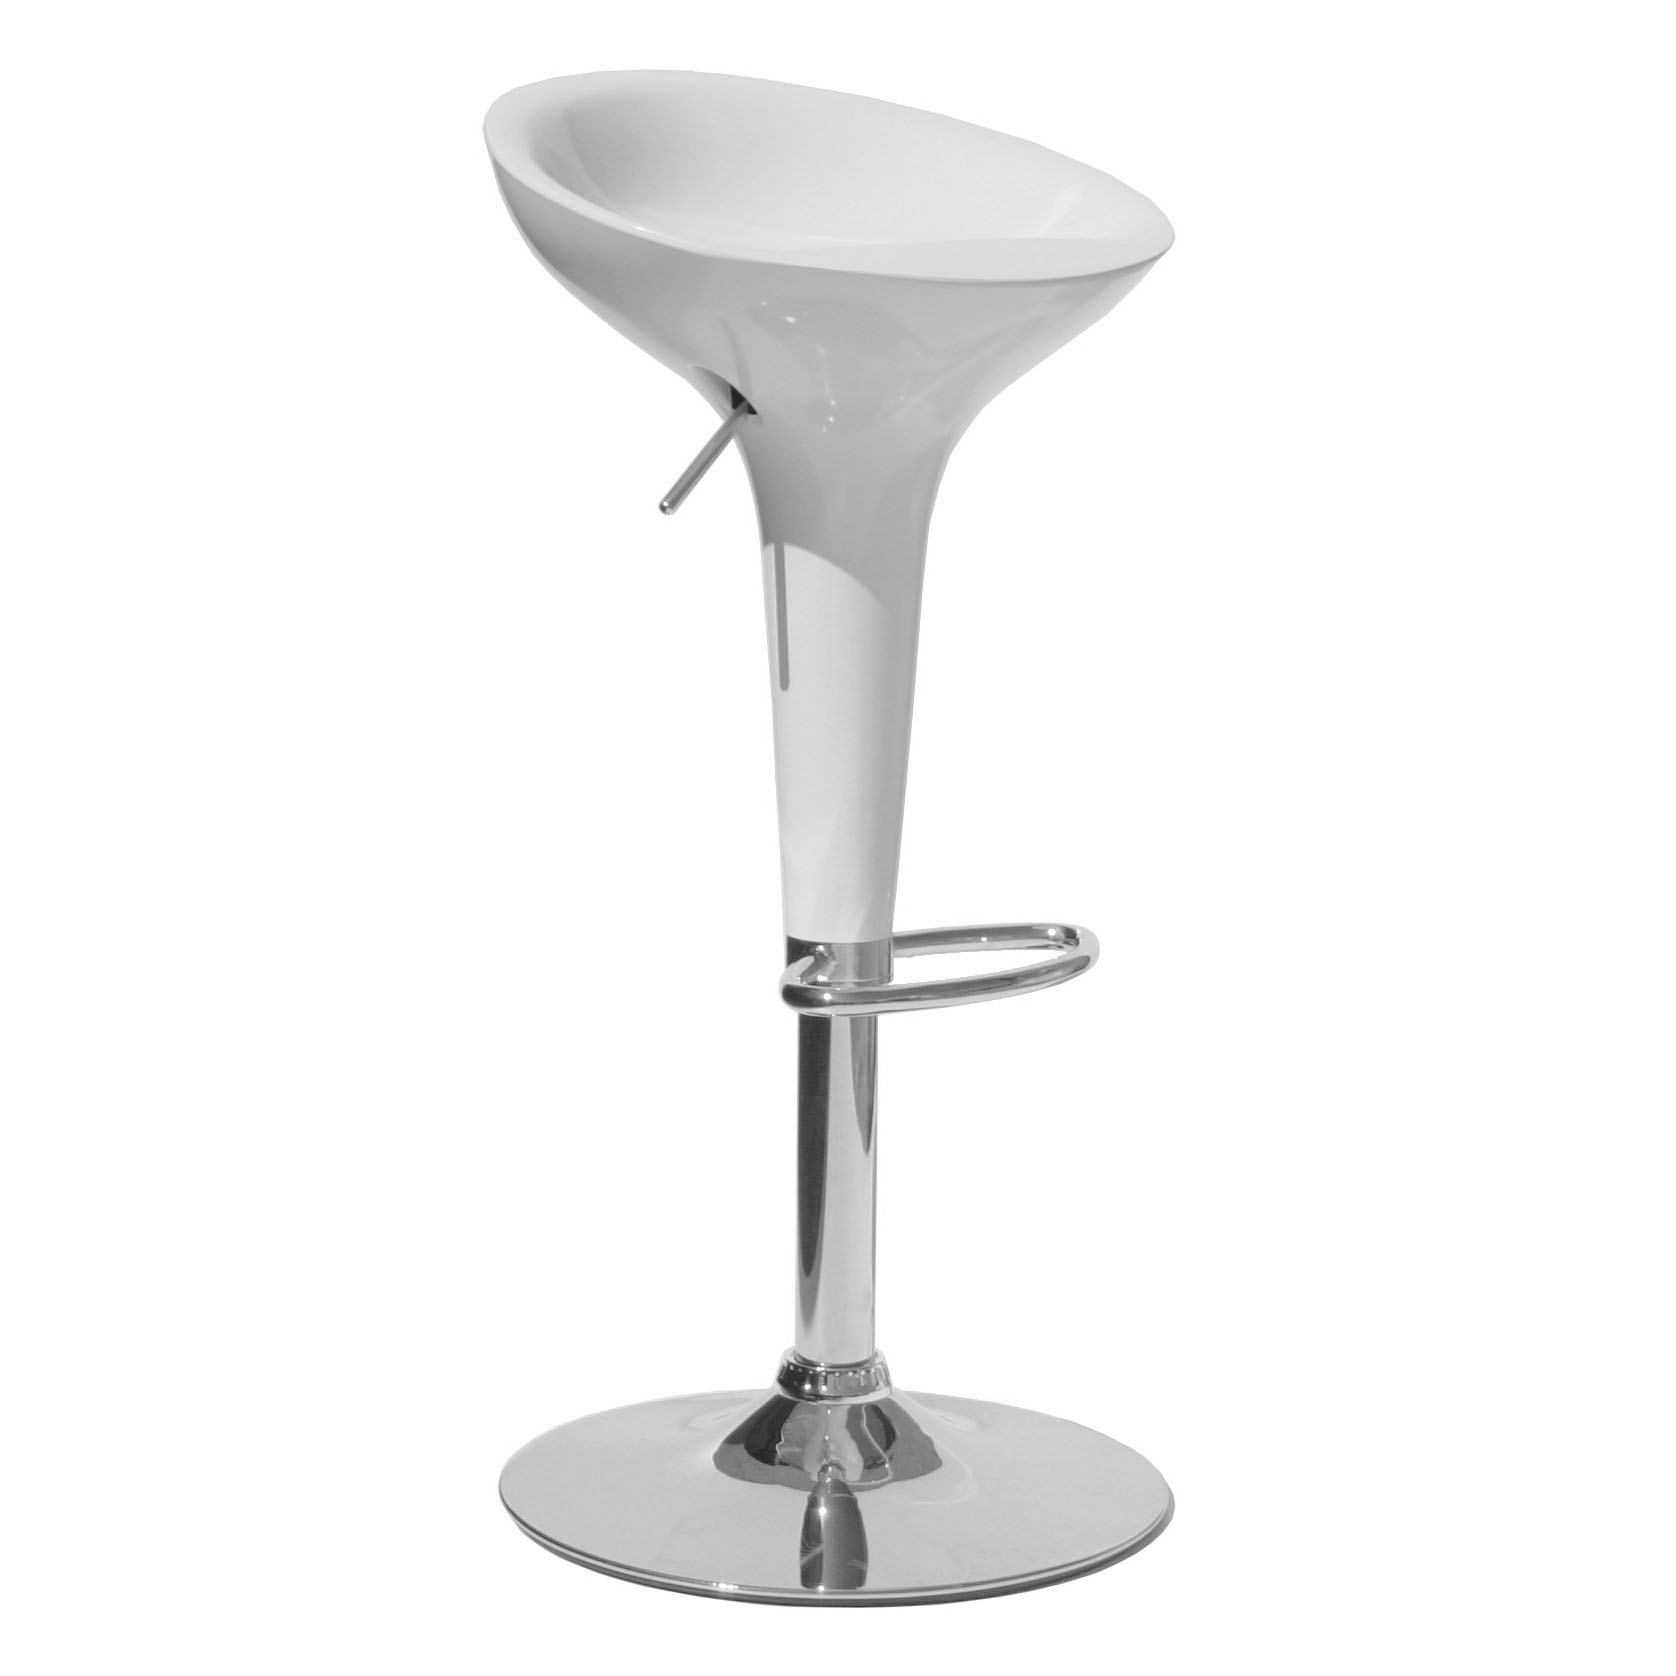 furniture bamboo dark with bar stool decor brown back made wicker upholstered stools coated white attractive ideas